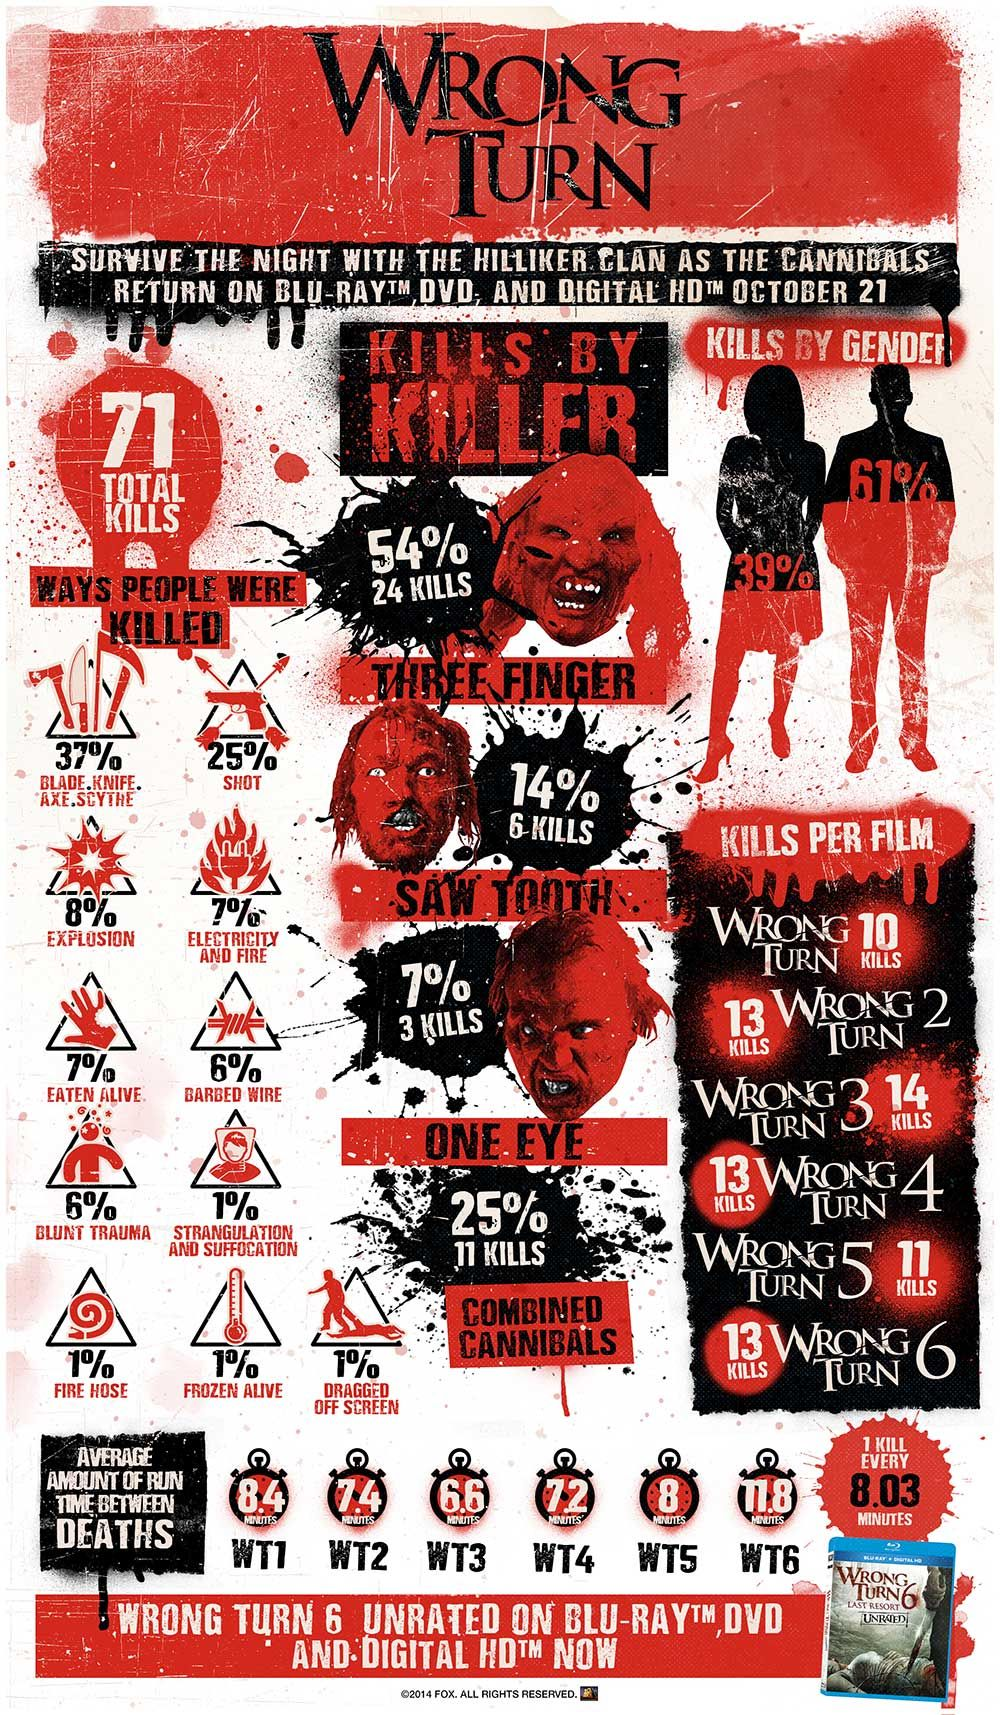 FOX Celebrates With Wrong Turn Infographic Wrong turn